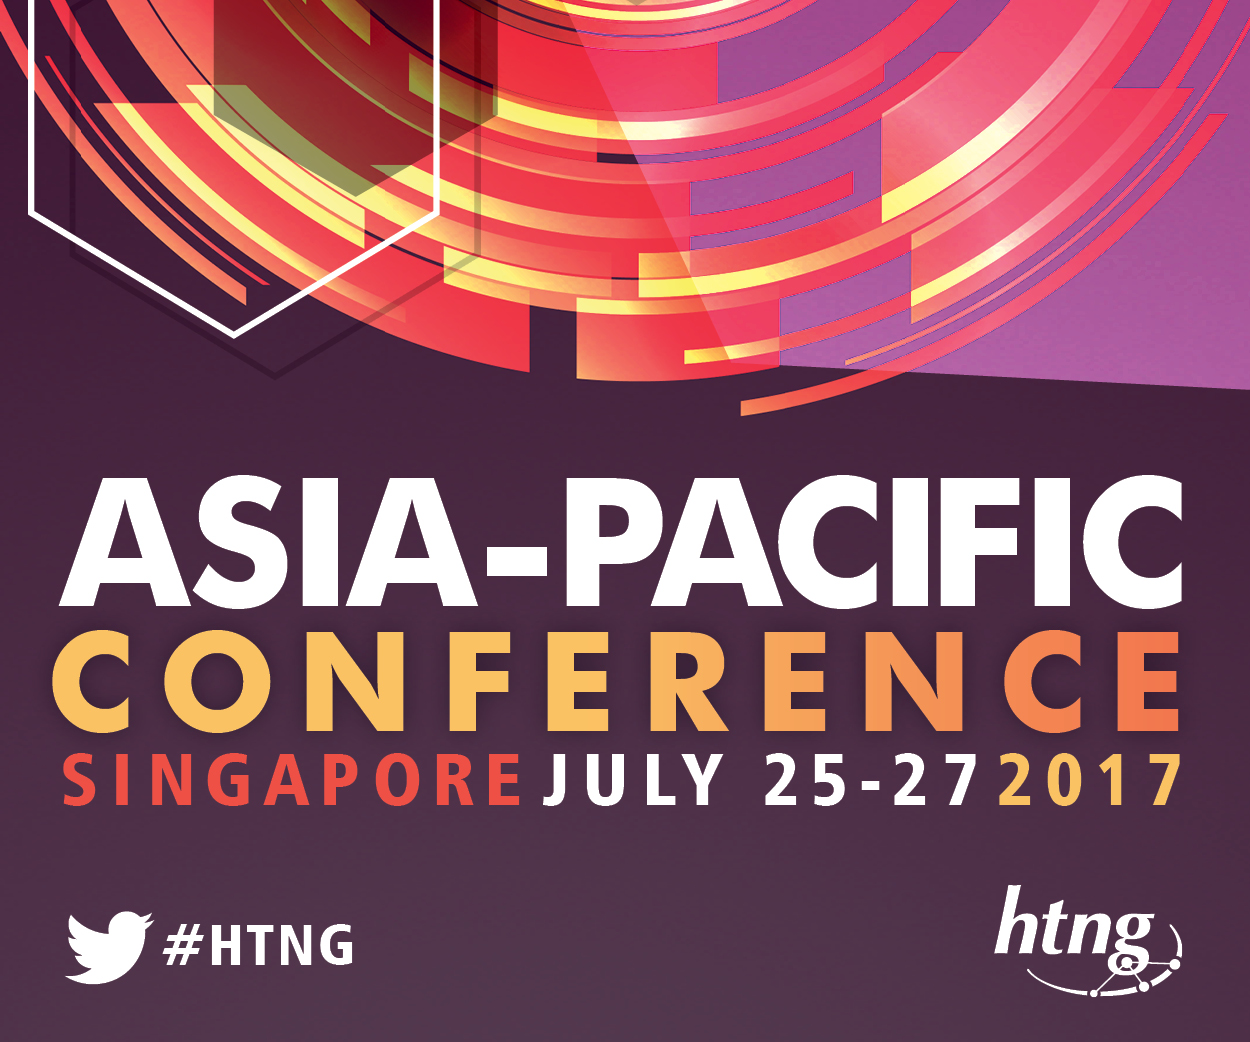 HTNG Releases 2017 Asia-Pacific Conference Agenda